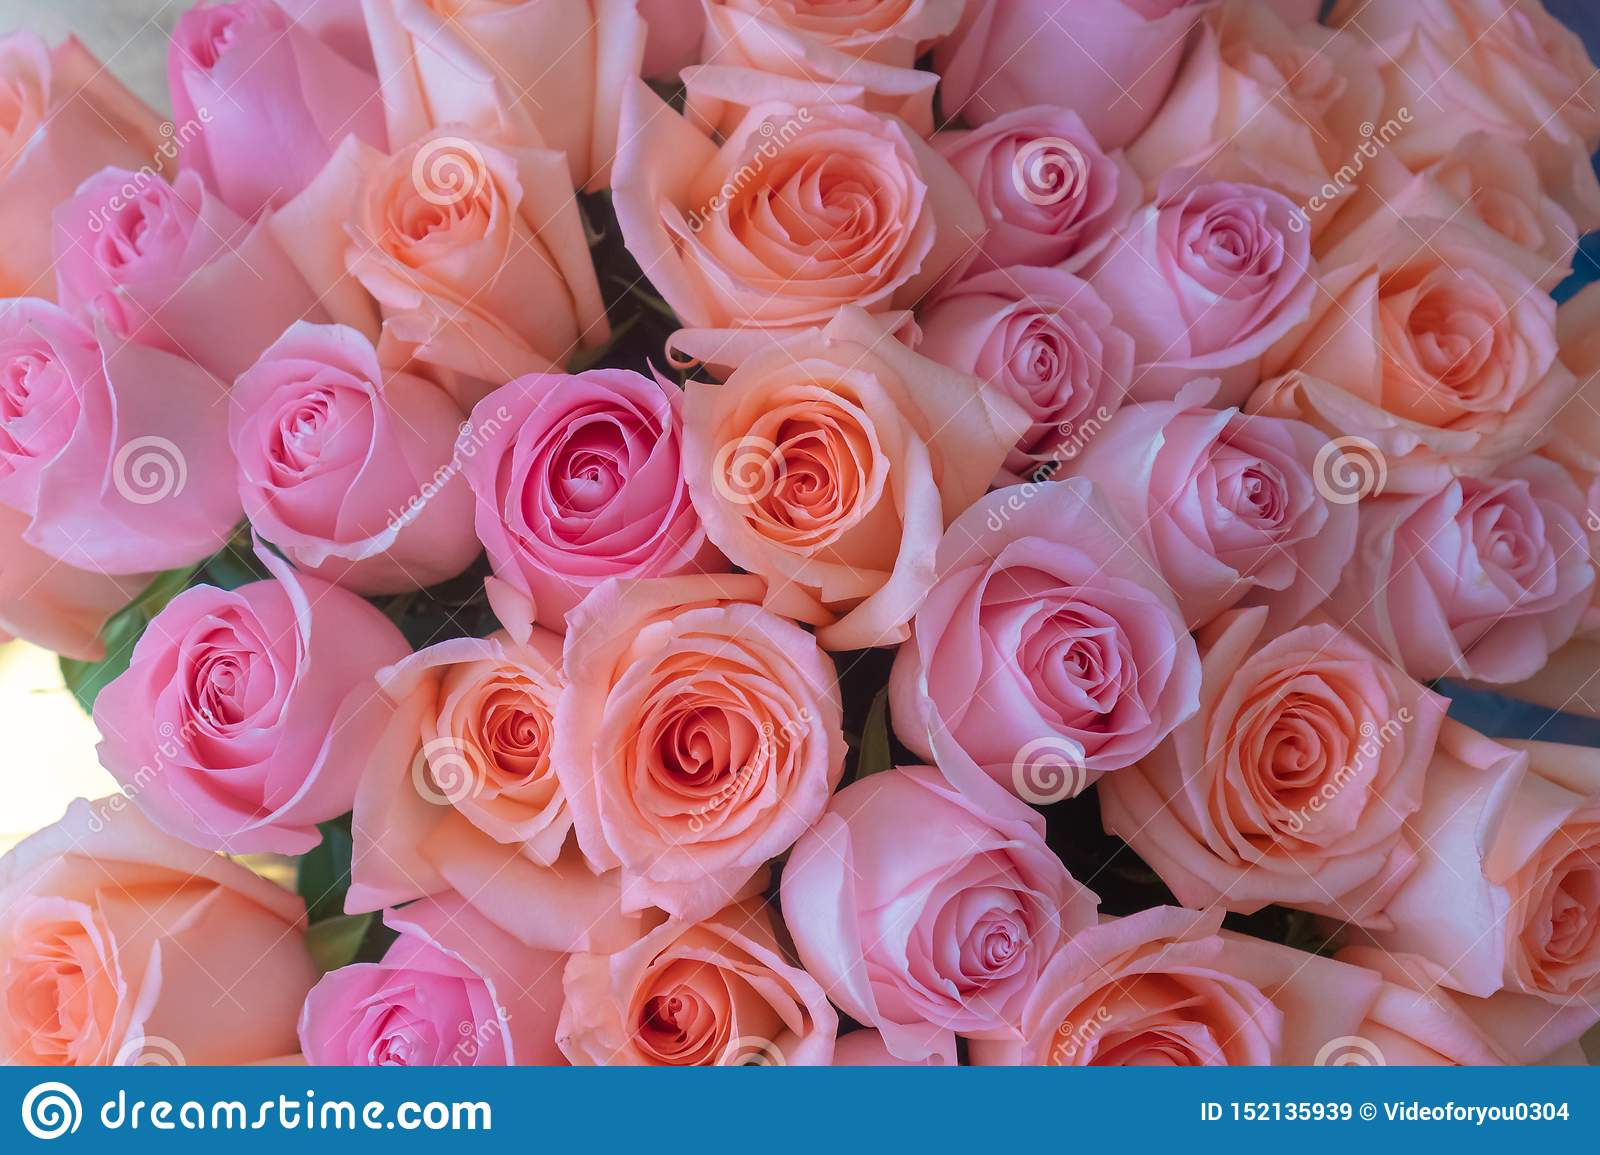 77 914 Birthday Roses Photos Free Royalty Free Stock Photos From Dreamstime